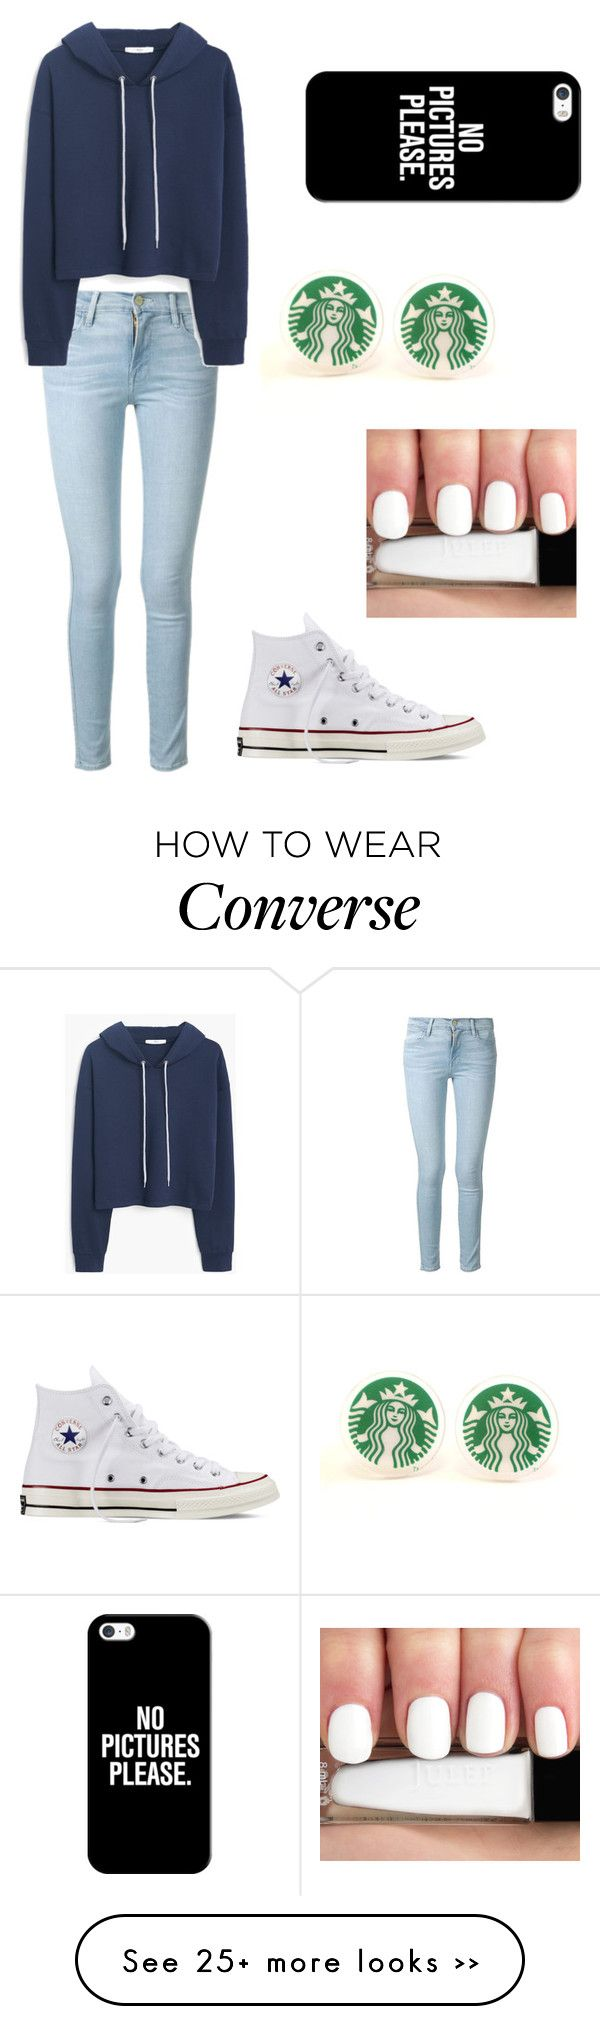 """Untitled #2091"" by aiag on Polyvore"